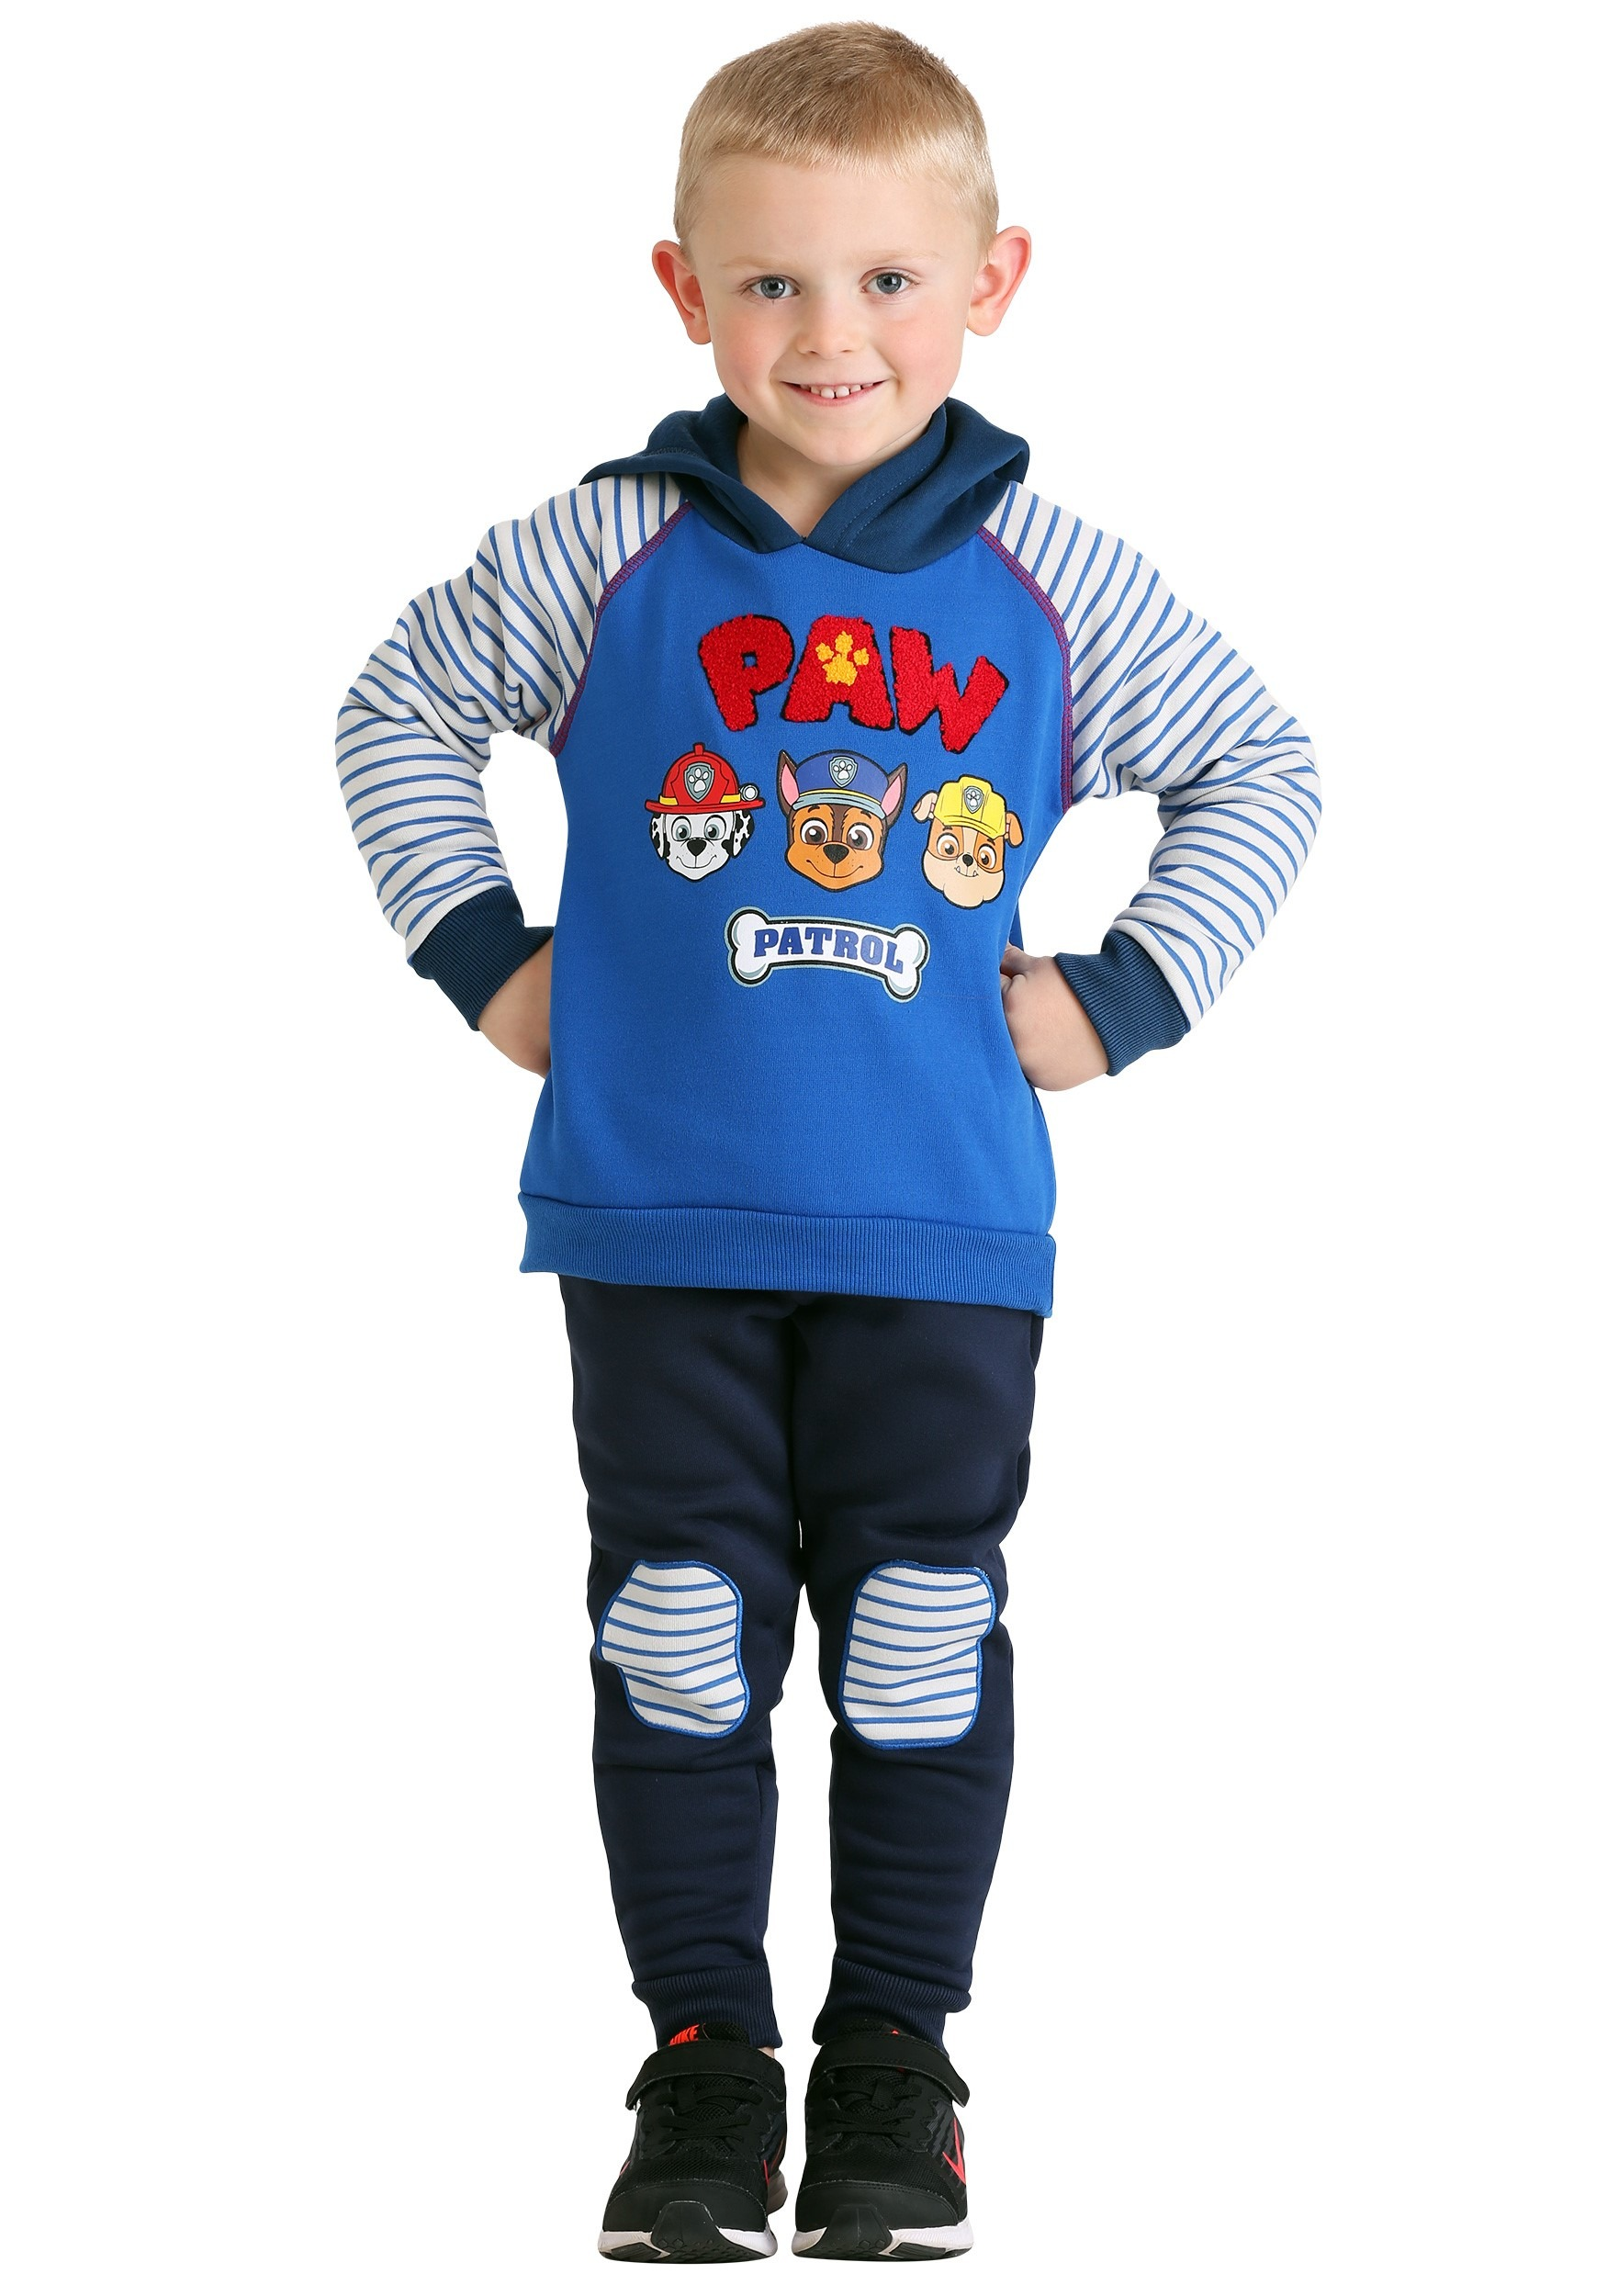 Pullover Hoodie Sweatshirt & Knee Patch Jogger Pants, 2pc Outfit Set (Baby Boys & Toddler Boys)